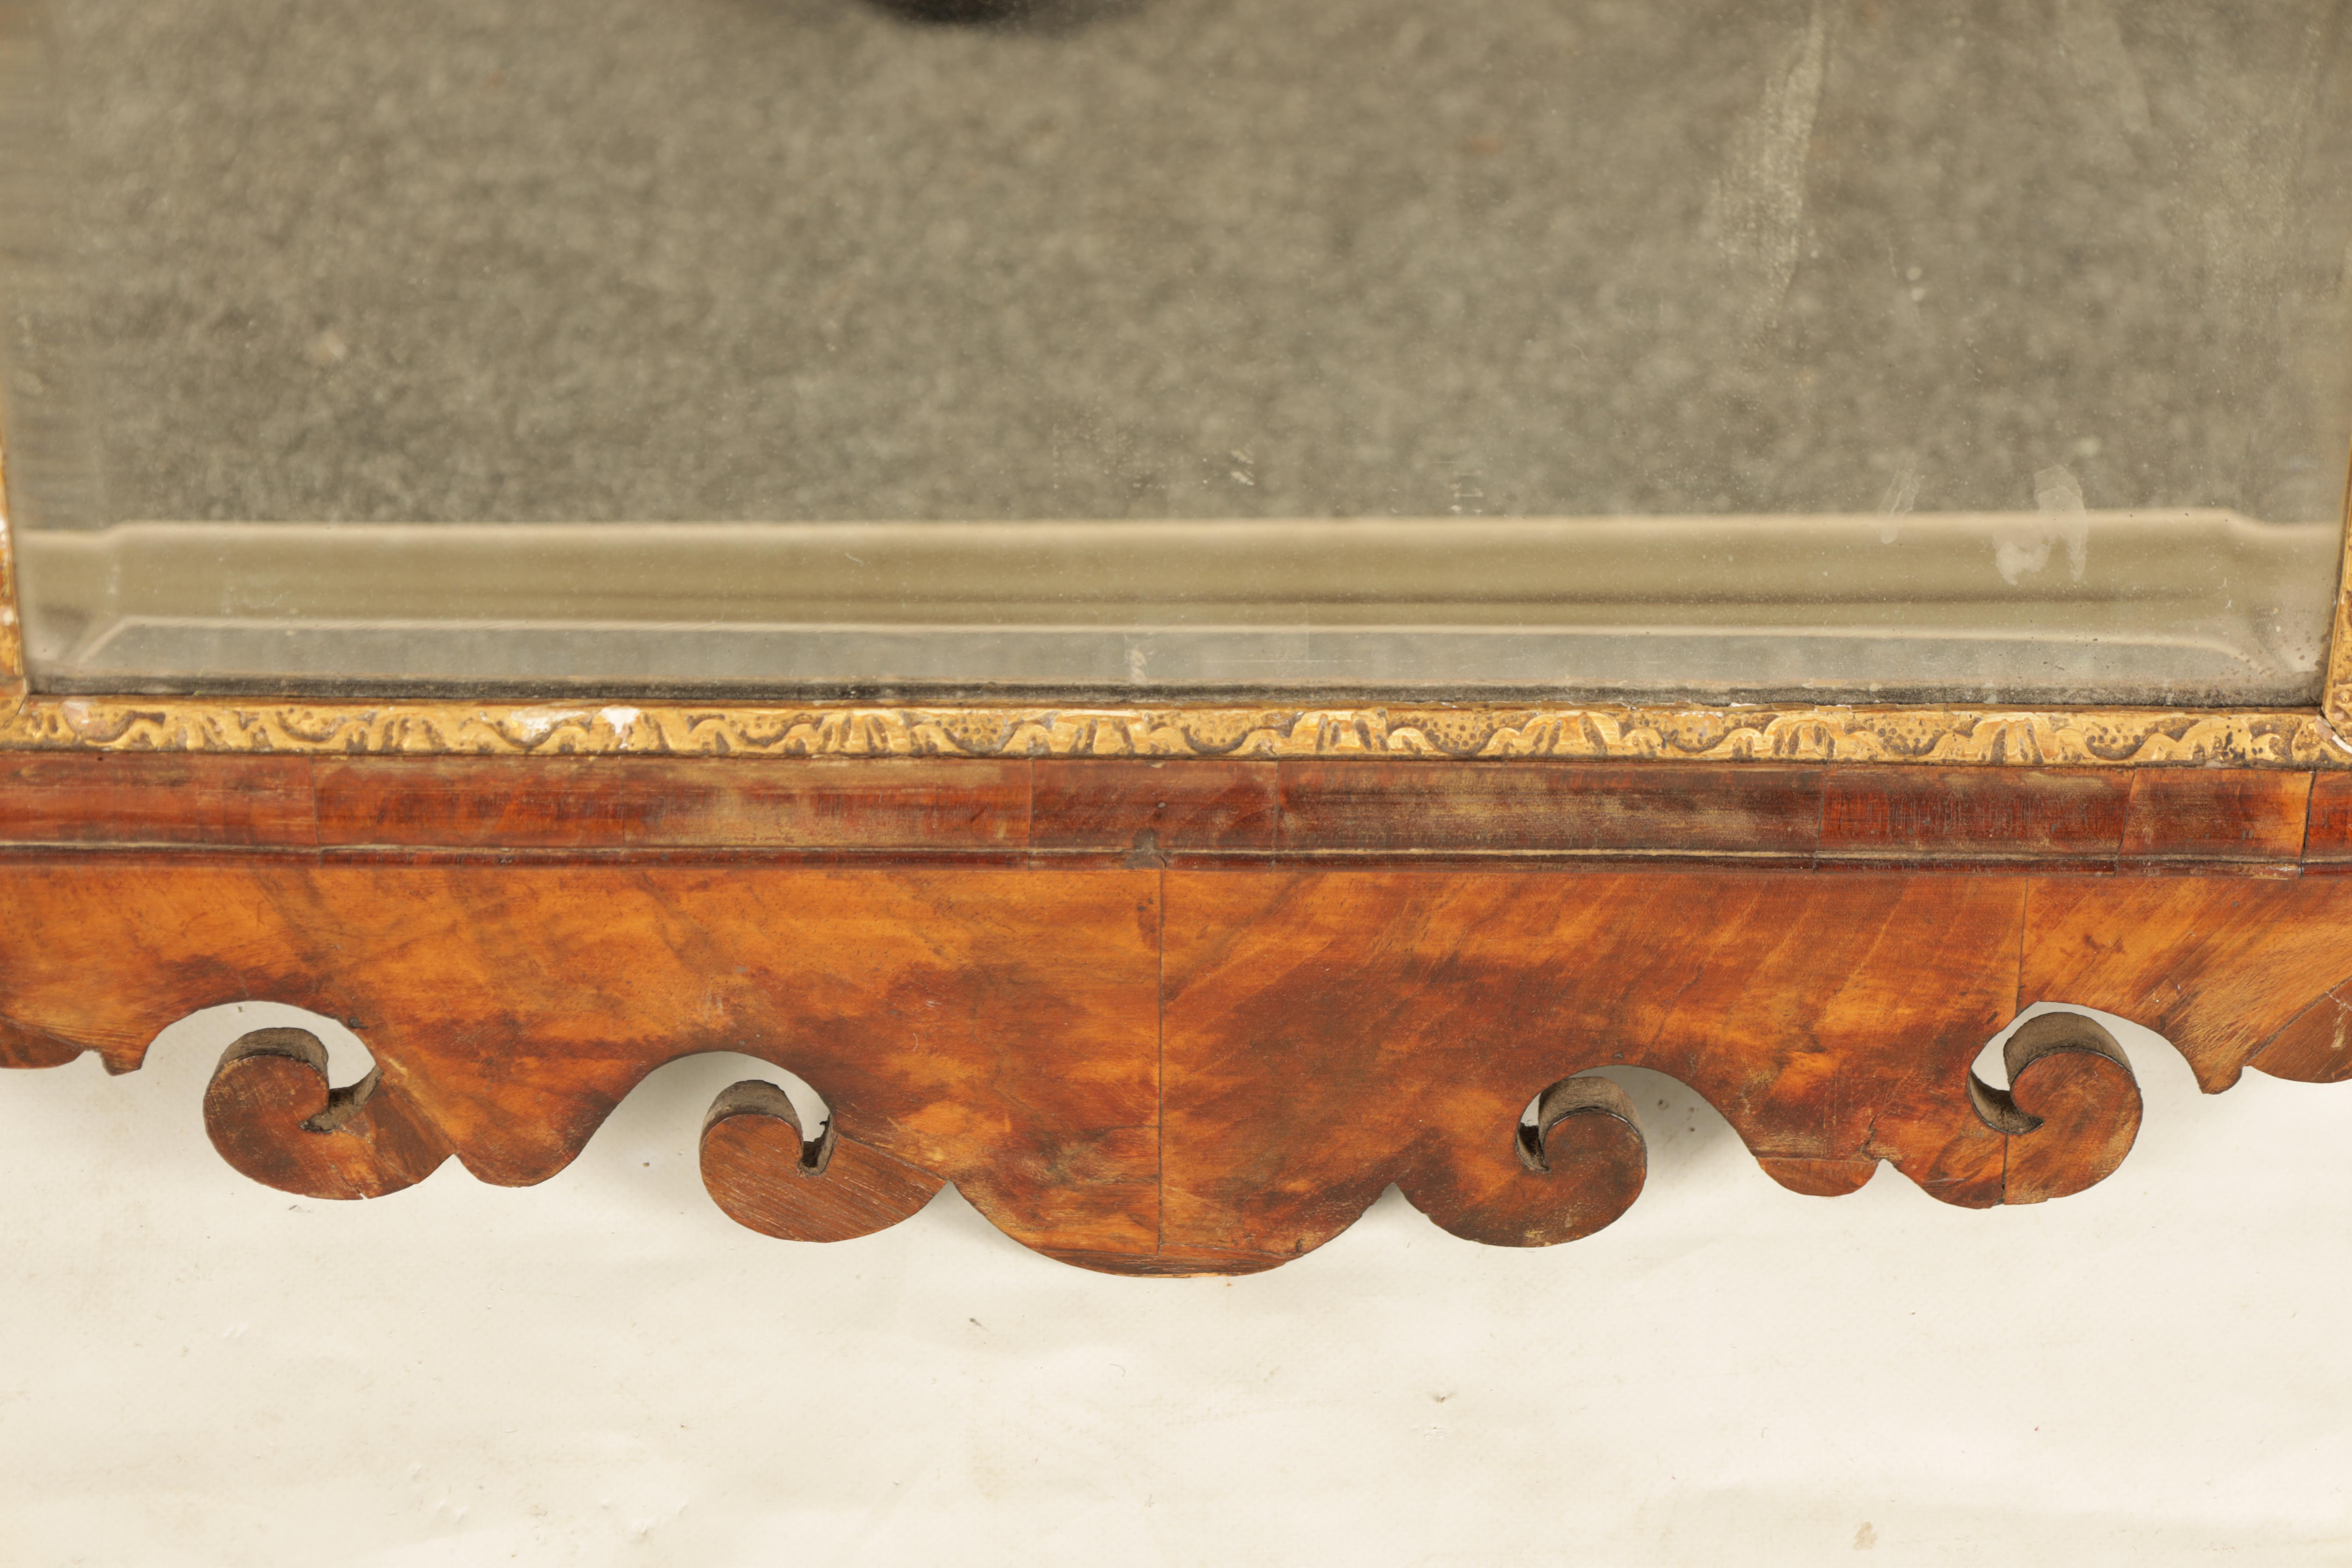 AN 18TH CENTURY WALNUT PIER MIRROR with shaped scrolled frame and gilt carved rococo pediment, the - Image 3 of 5